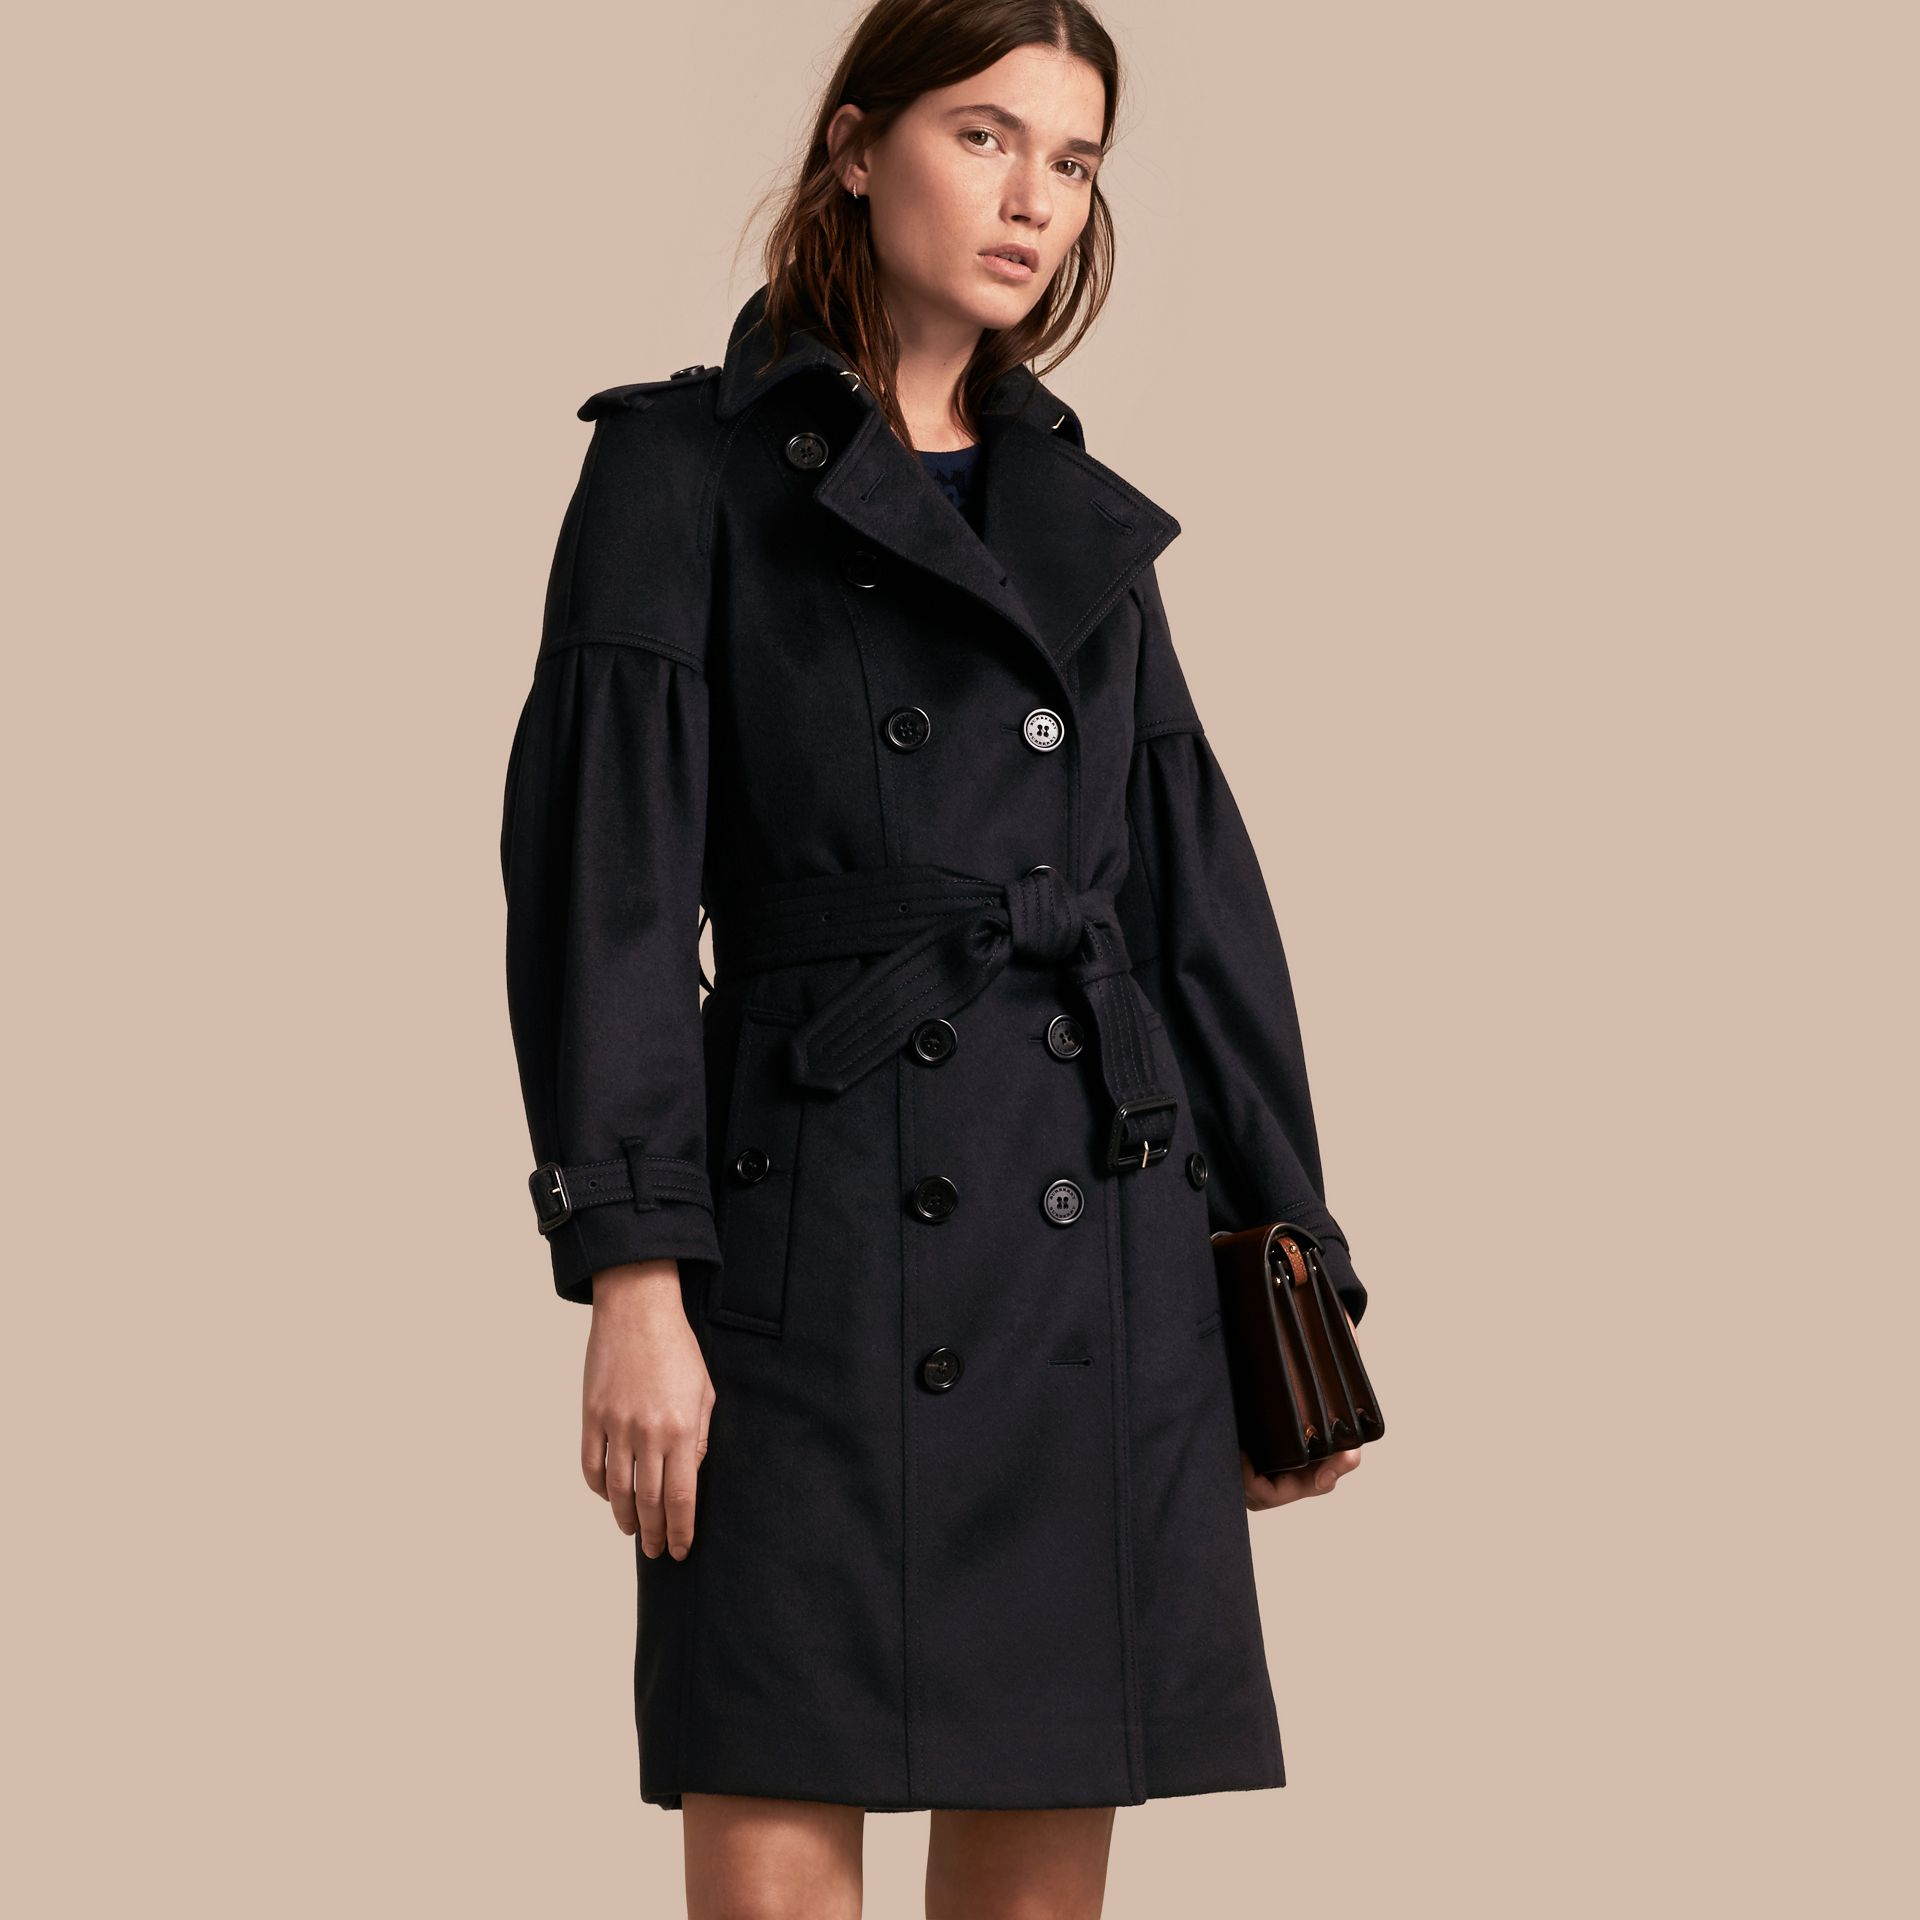 Navy Cashmere Trench Coat with Puff Sleeves Navy - gallery image 1